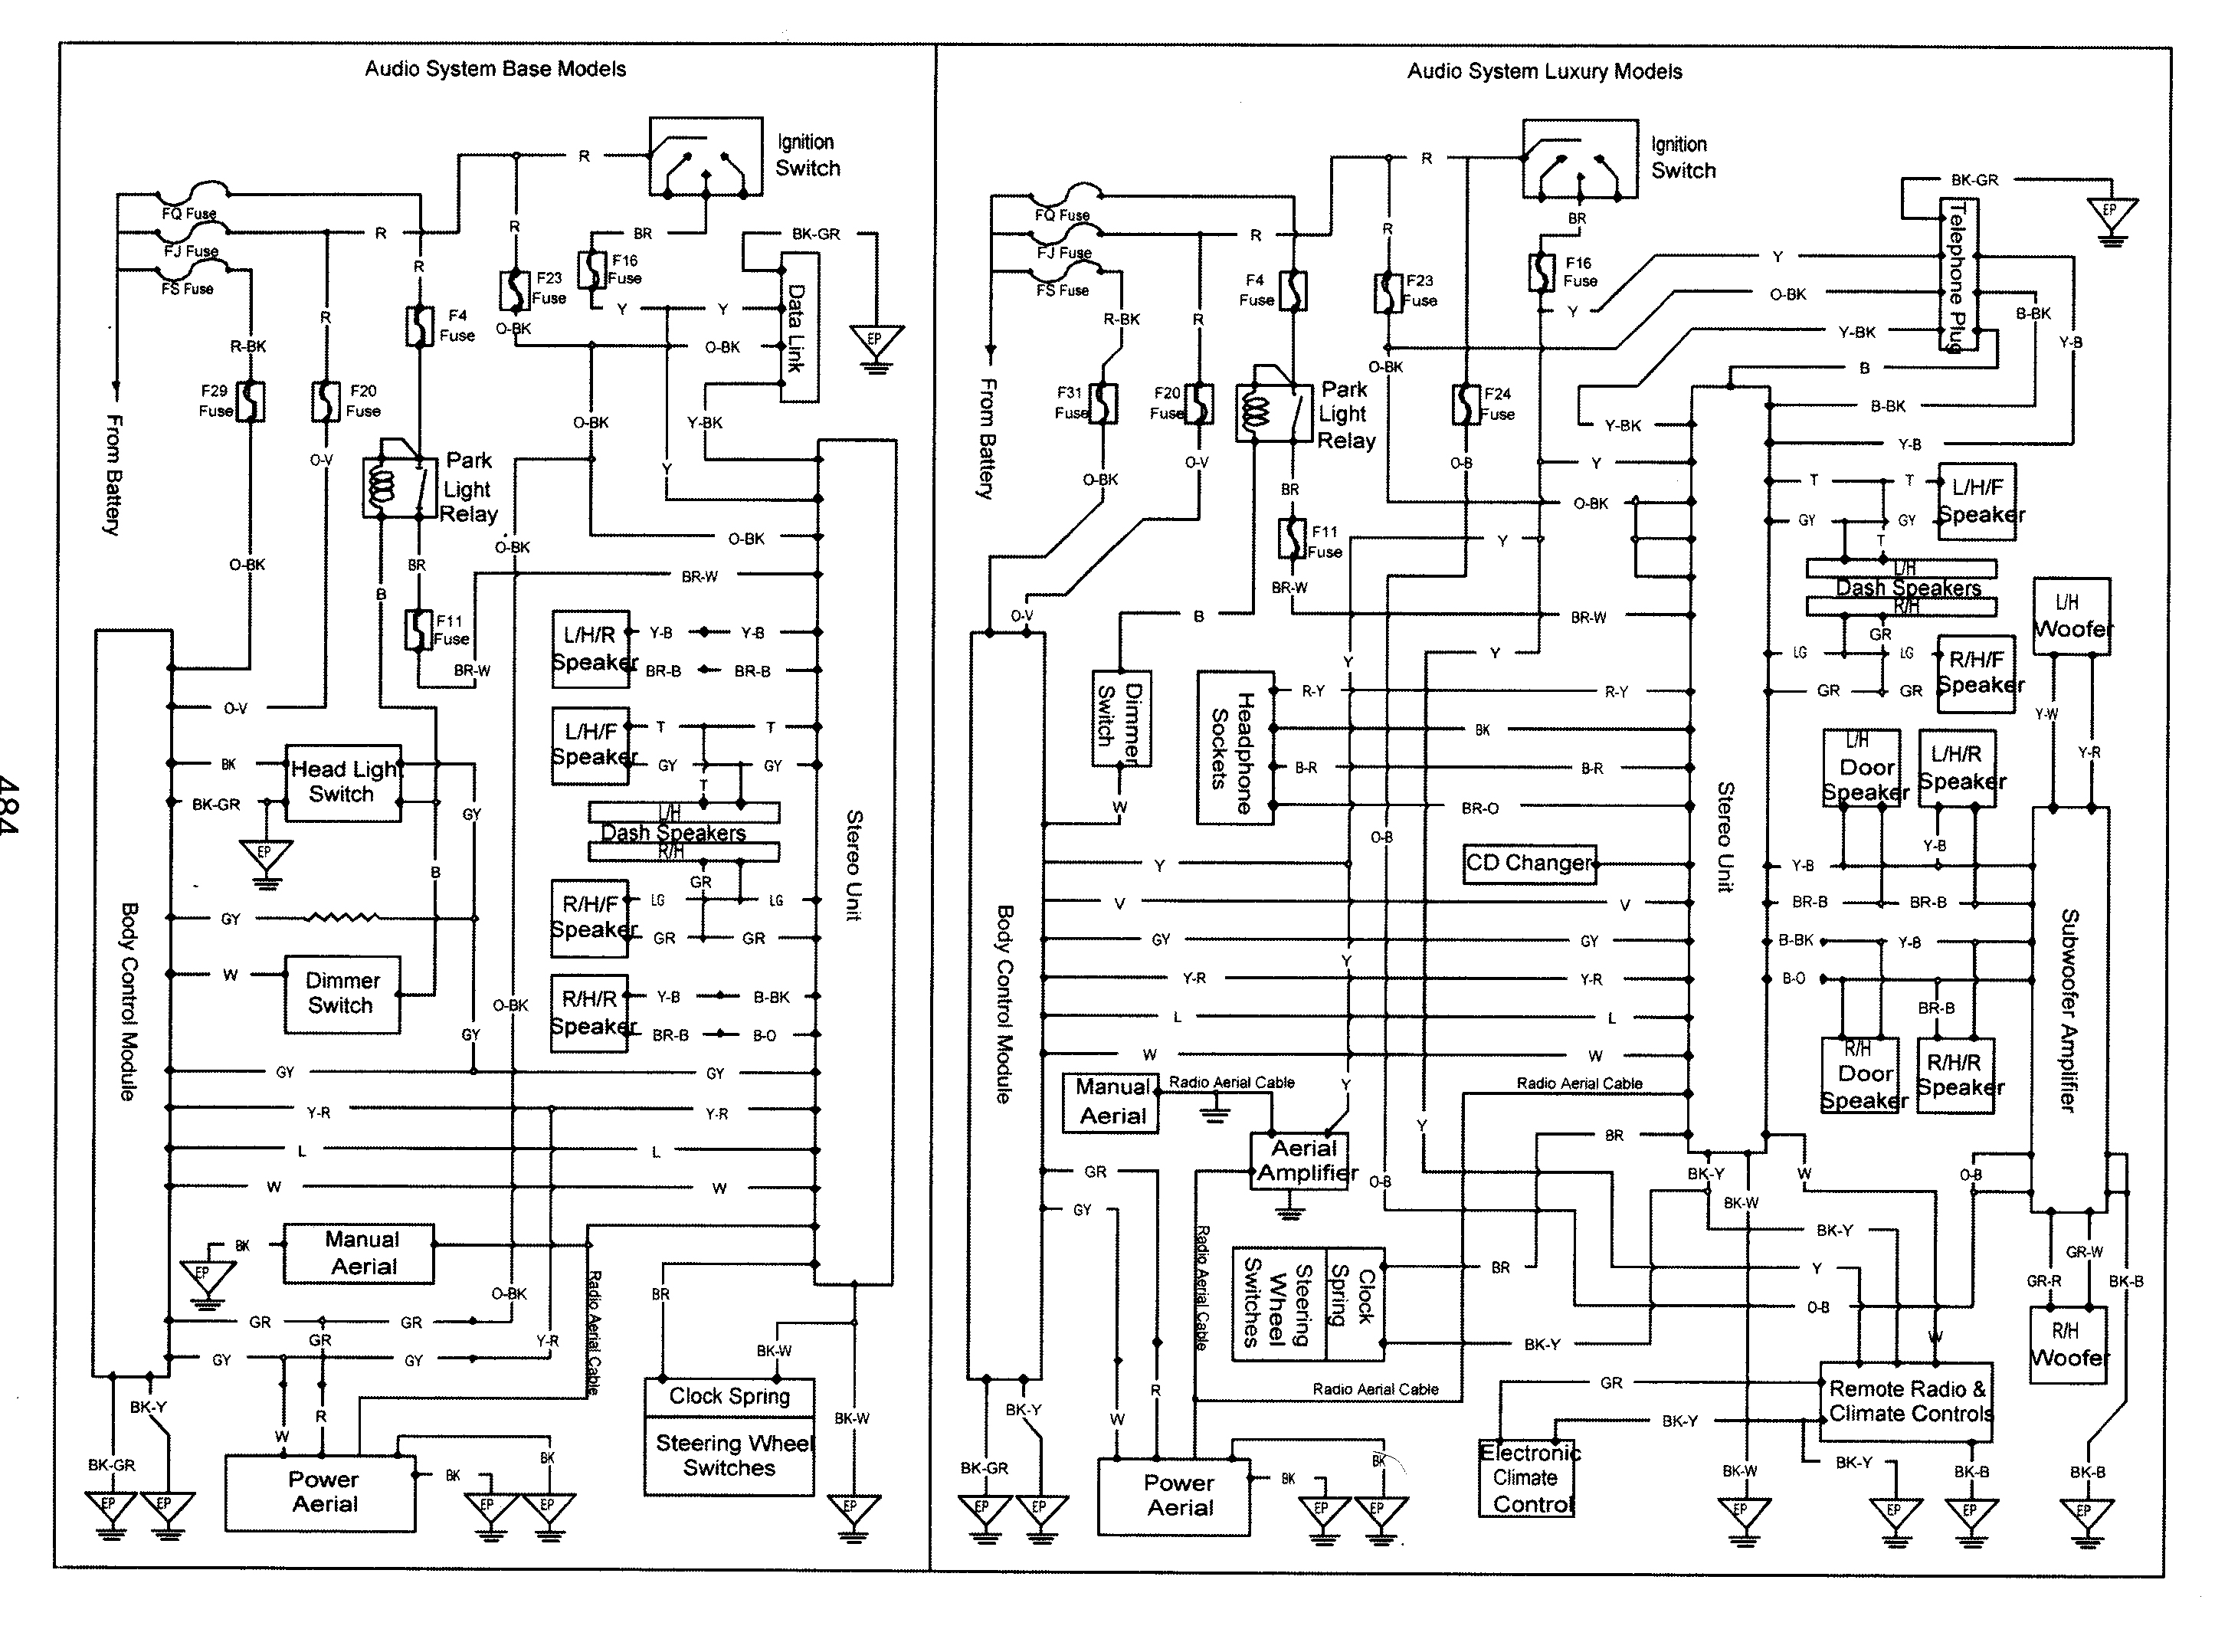 IMG_009?resized665%2C496 vz wiring diagram efcaviation com vz wiring diagram at gsmx.co